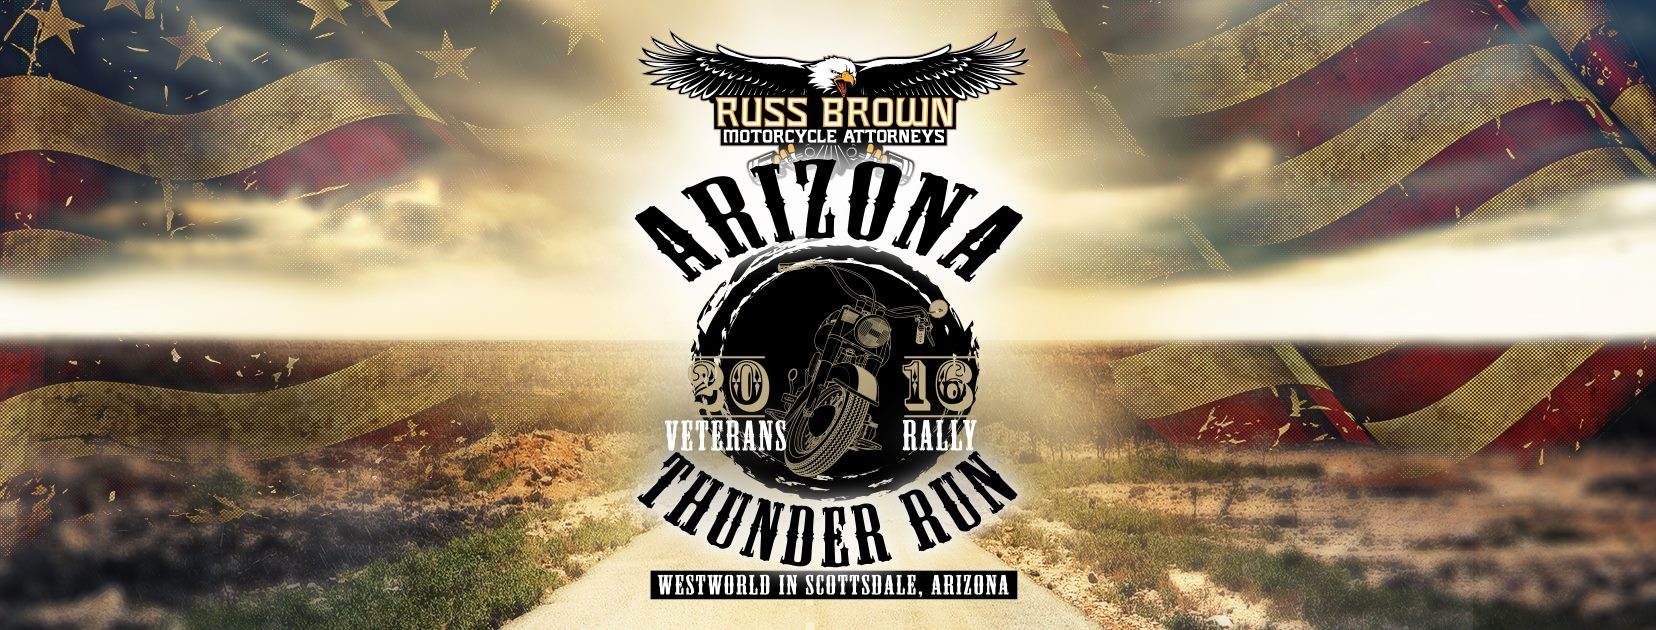 Arizona Thunder Run Veterans Rally